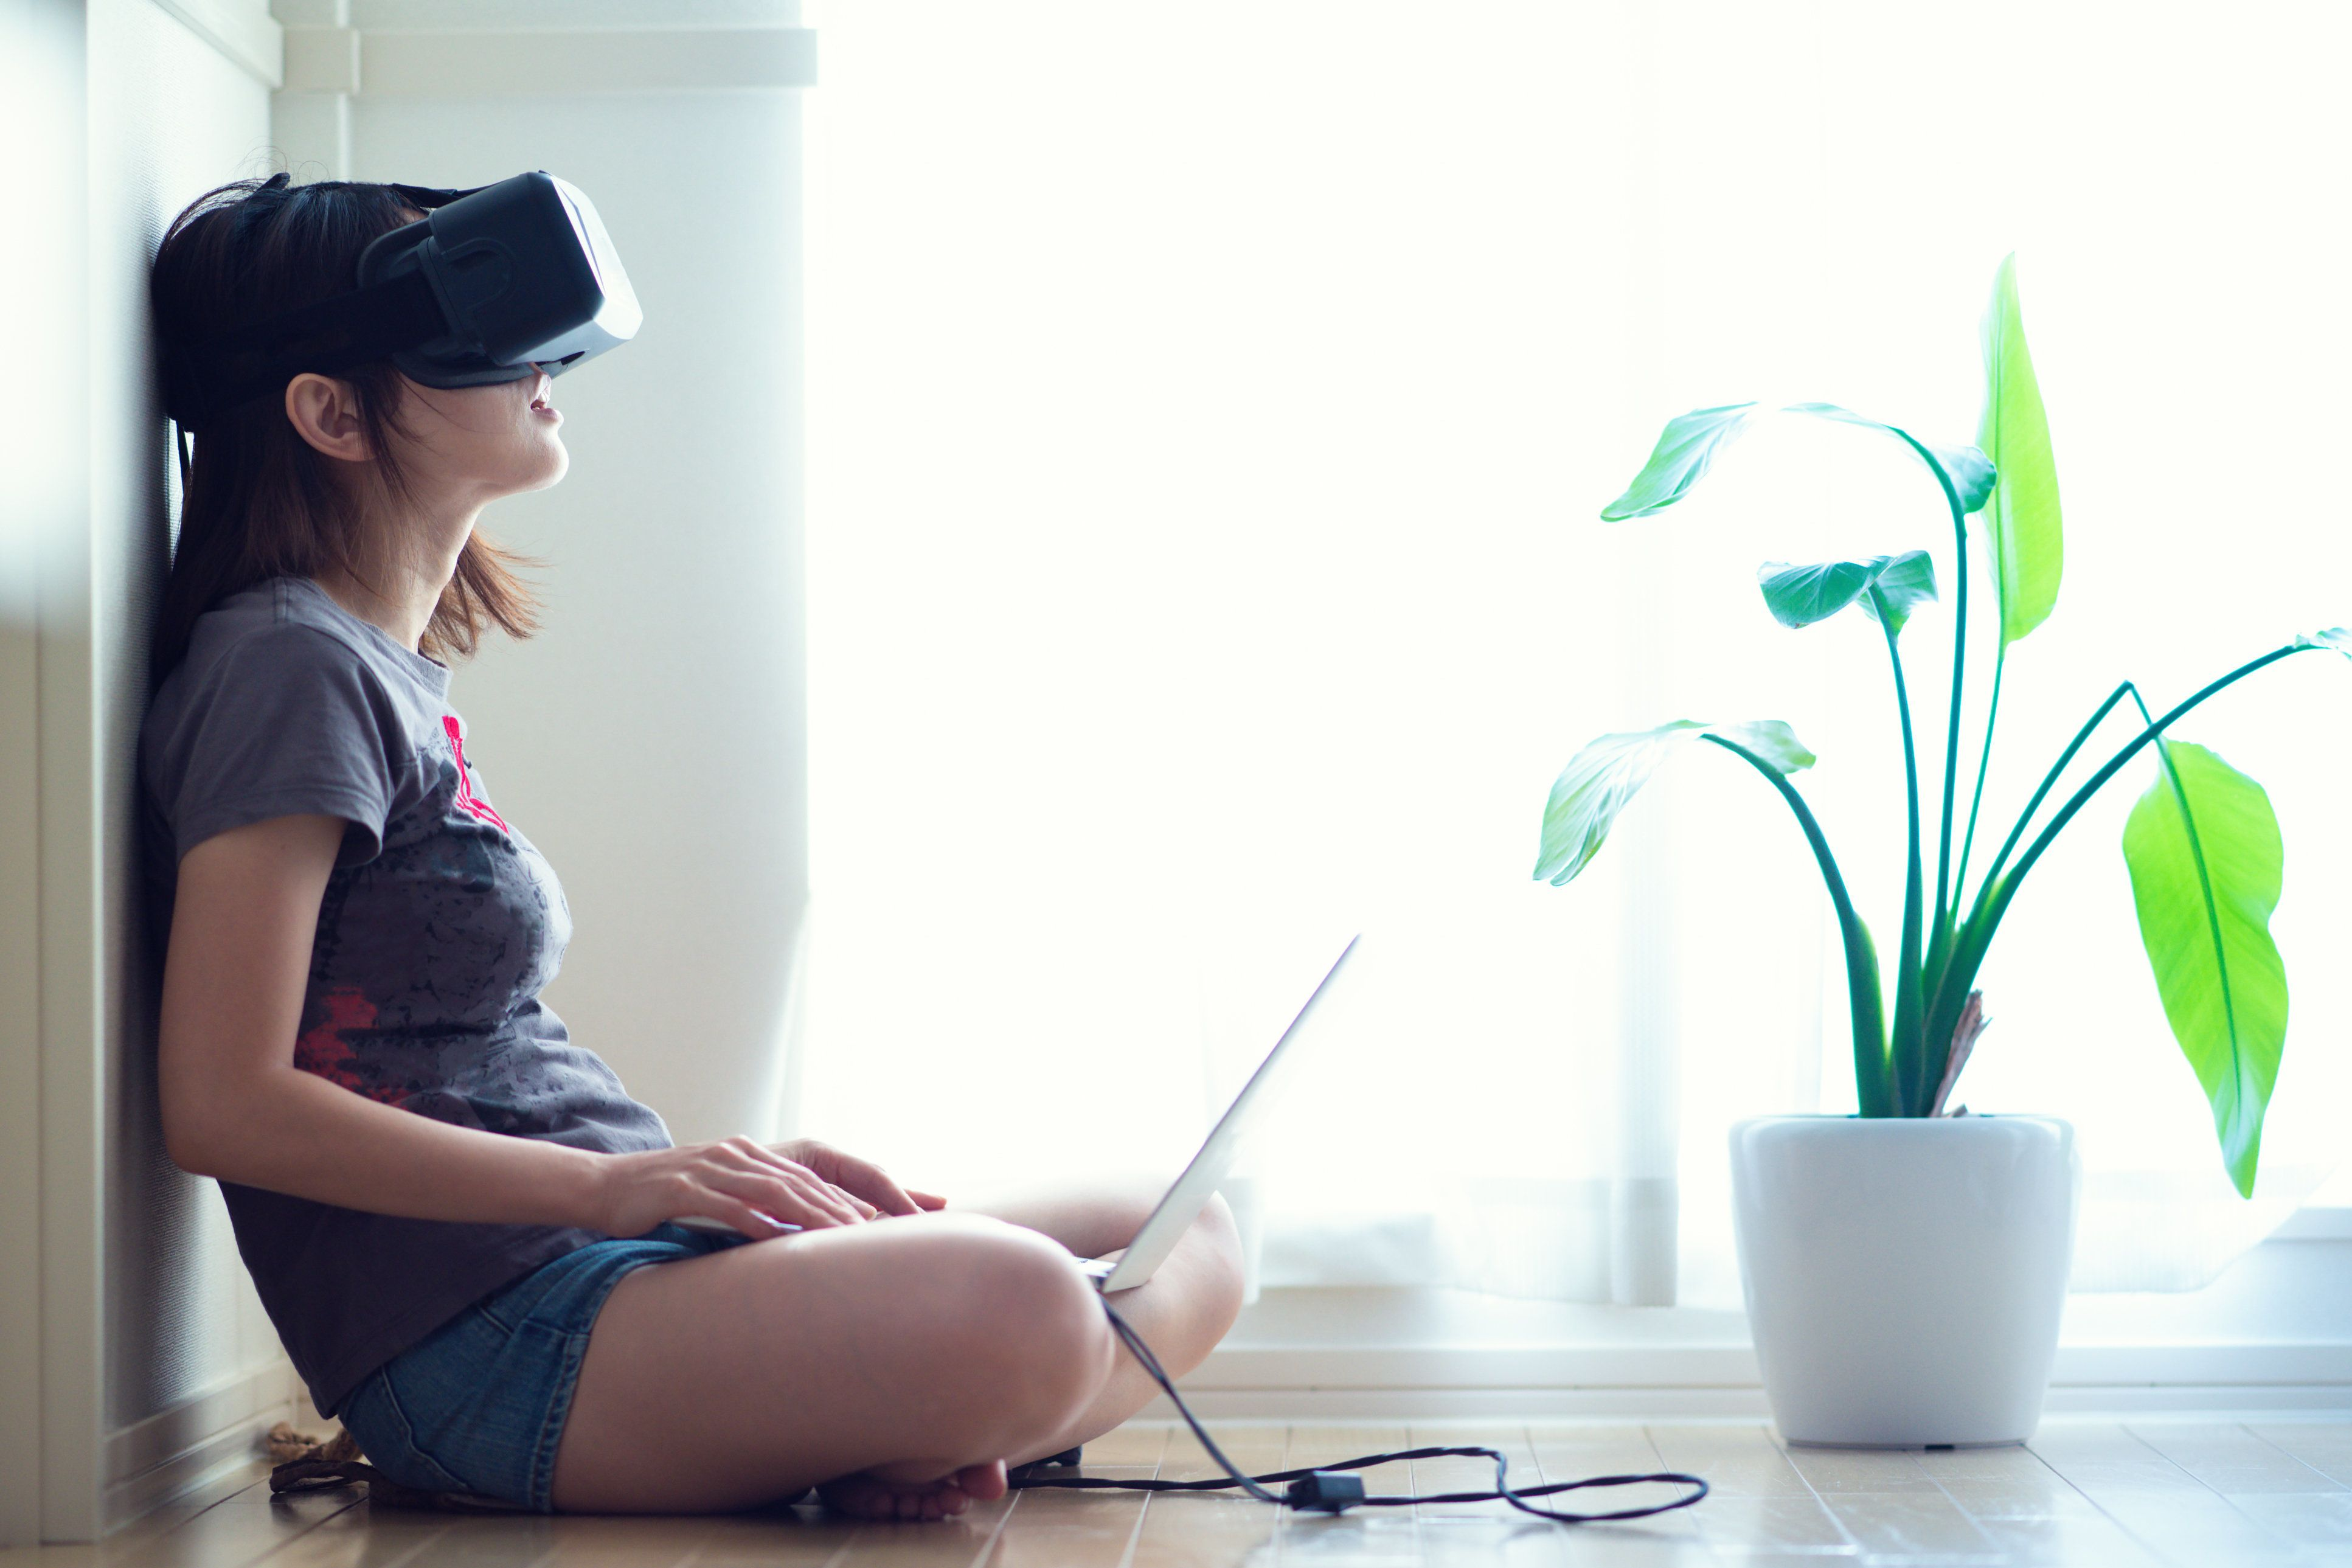 A new study finds that virtual reality therapy can boost feelings of self-compassion in patients with depression.